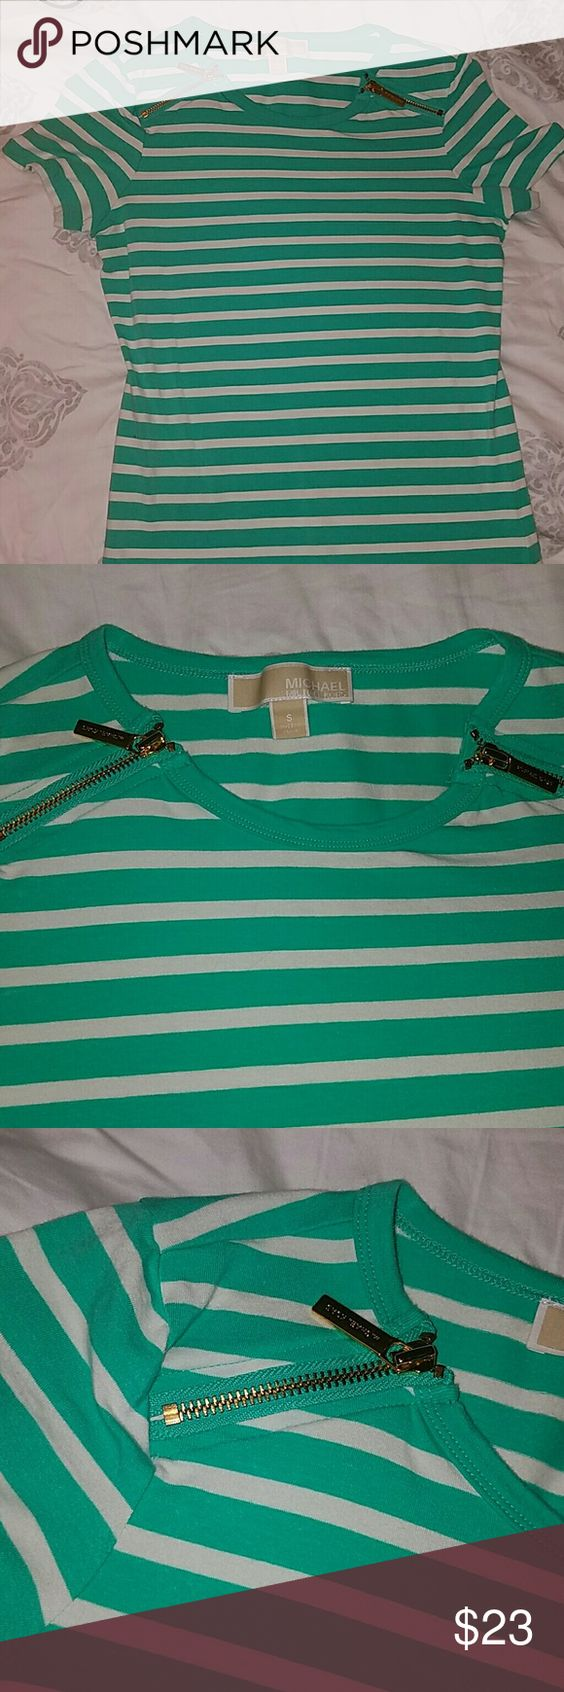 Michael Kors top Michael Kors top. Like new condition. Wore once. Mint green stripes with white. Gold zippers in each side. Michael Kors Tops Camisoles